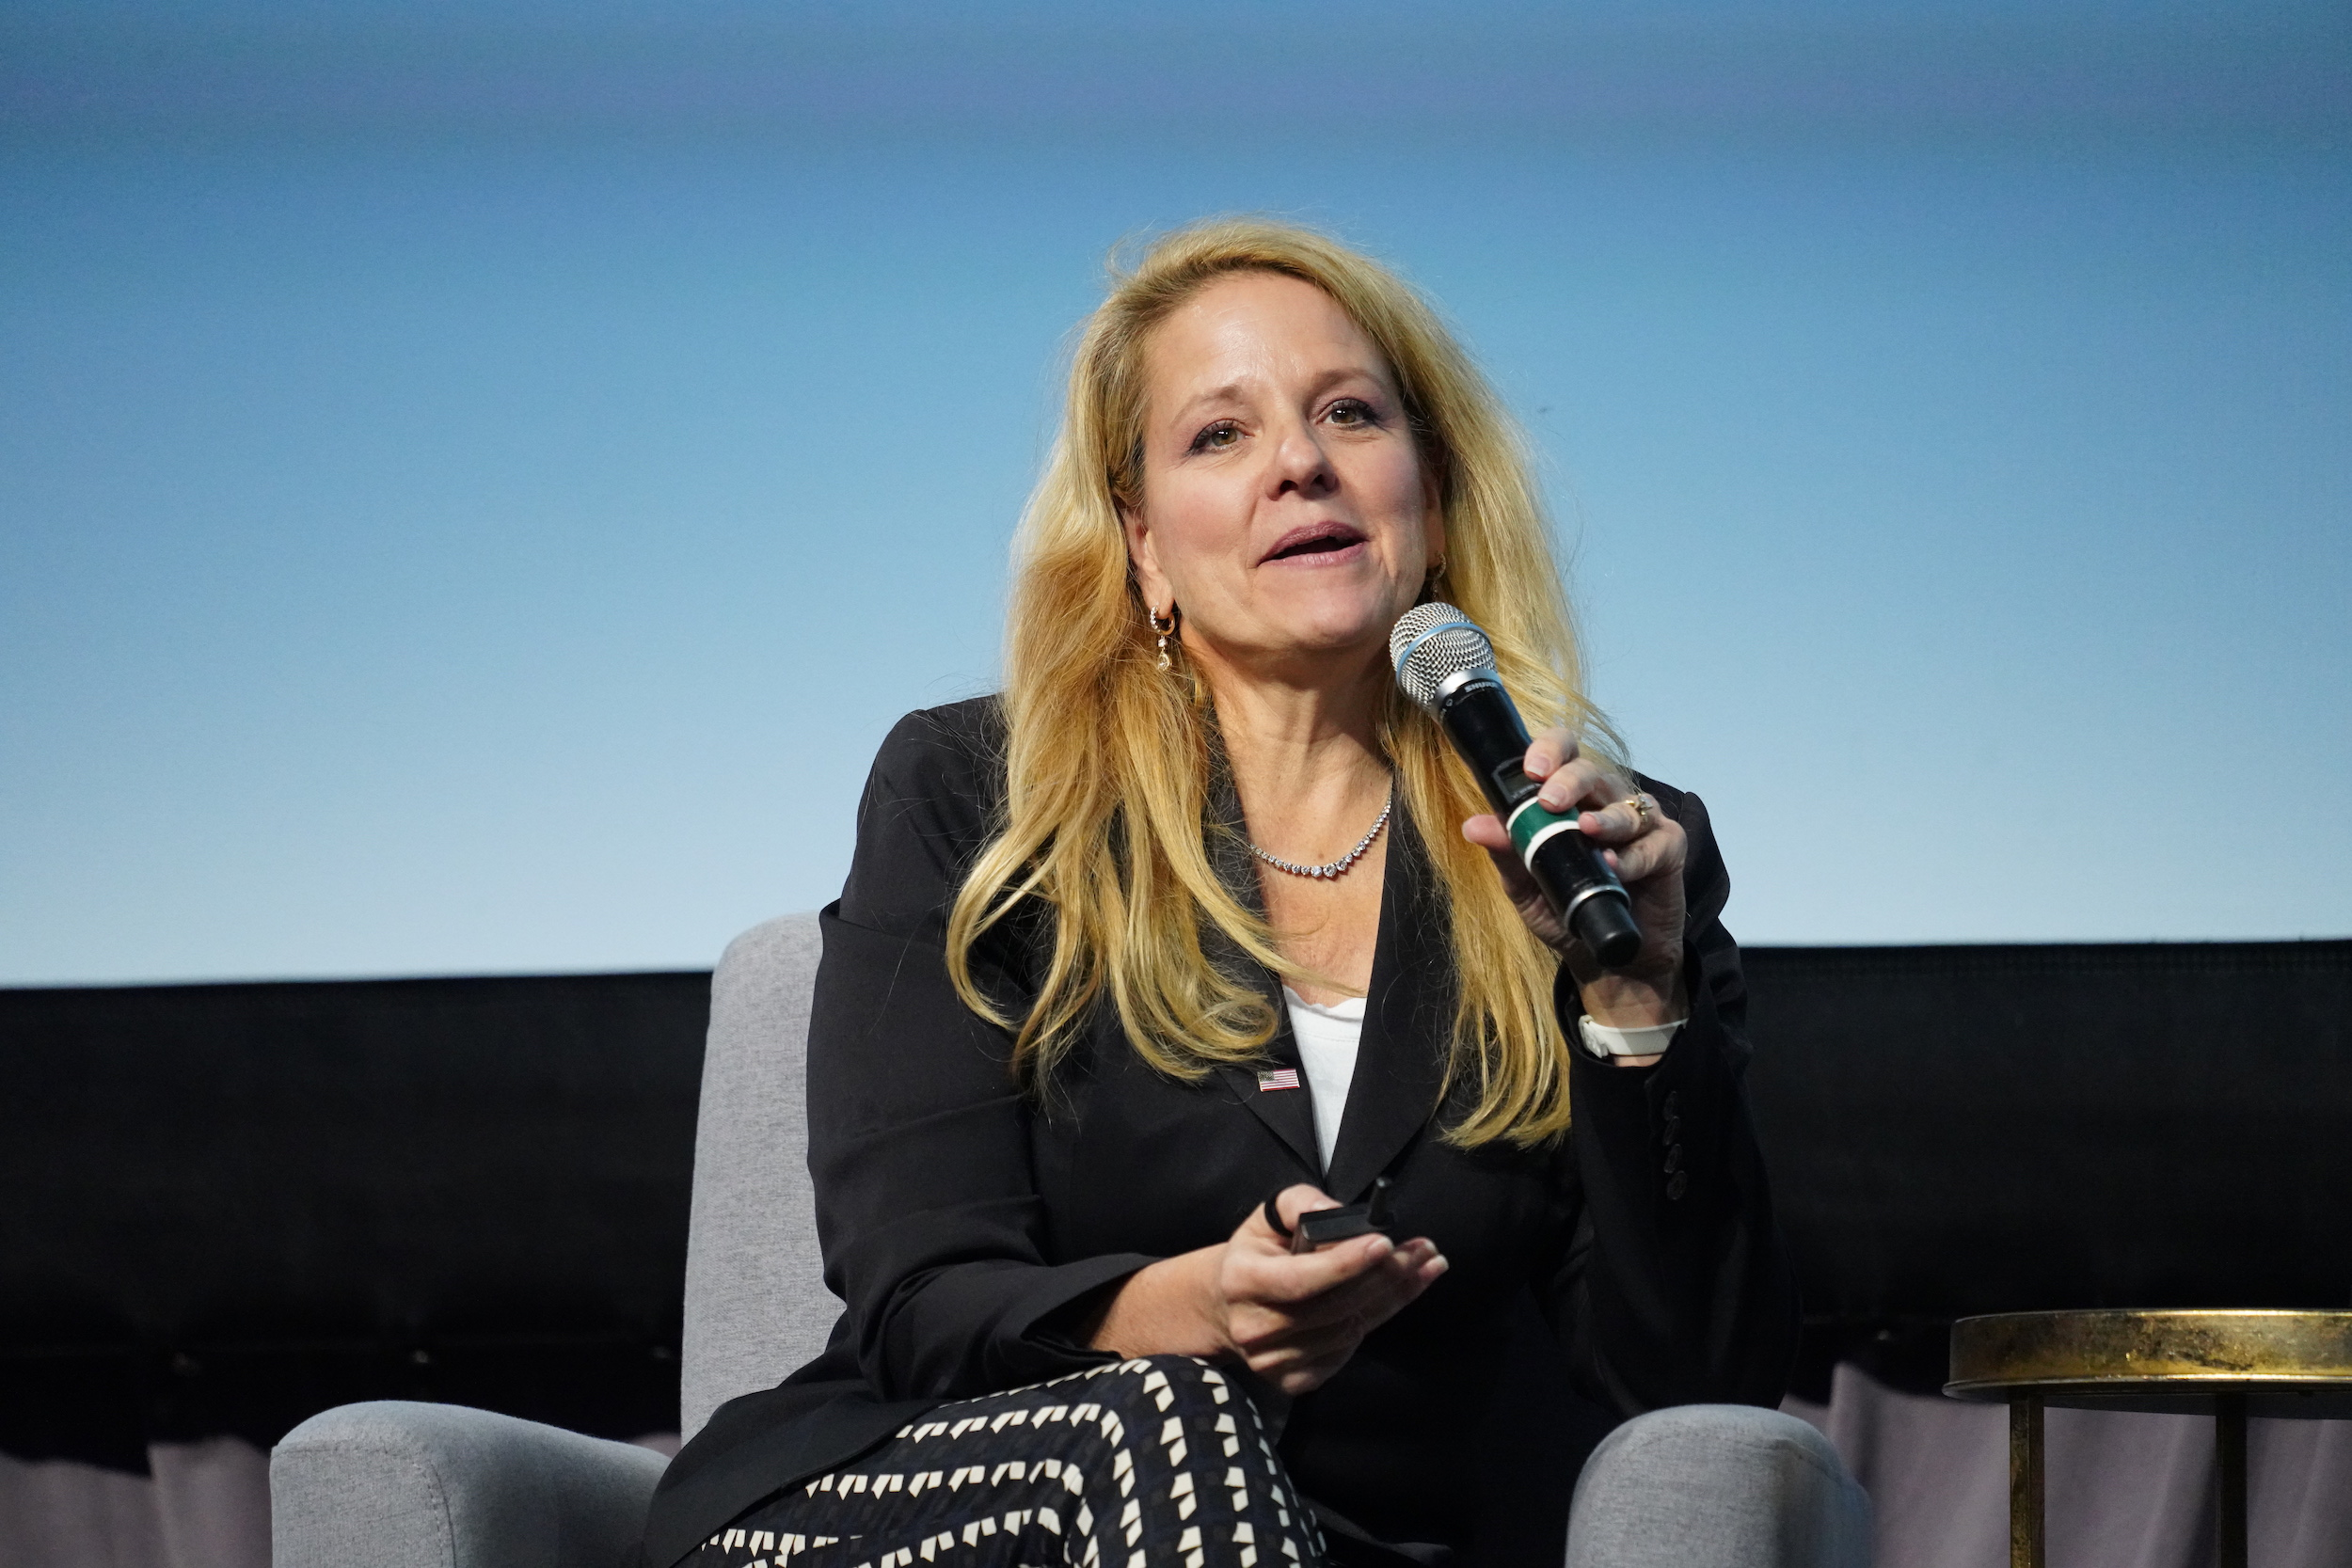 SpaceX President and COO Gwynne Shotwell